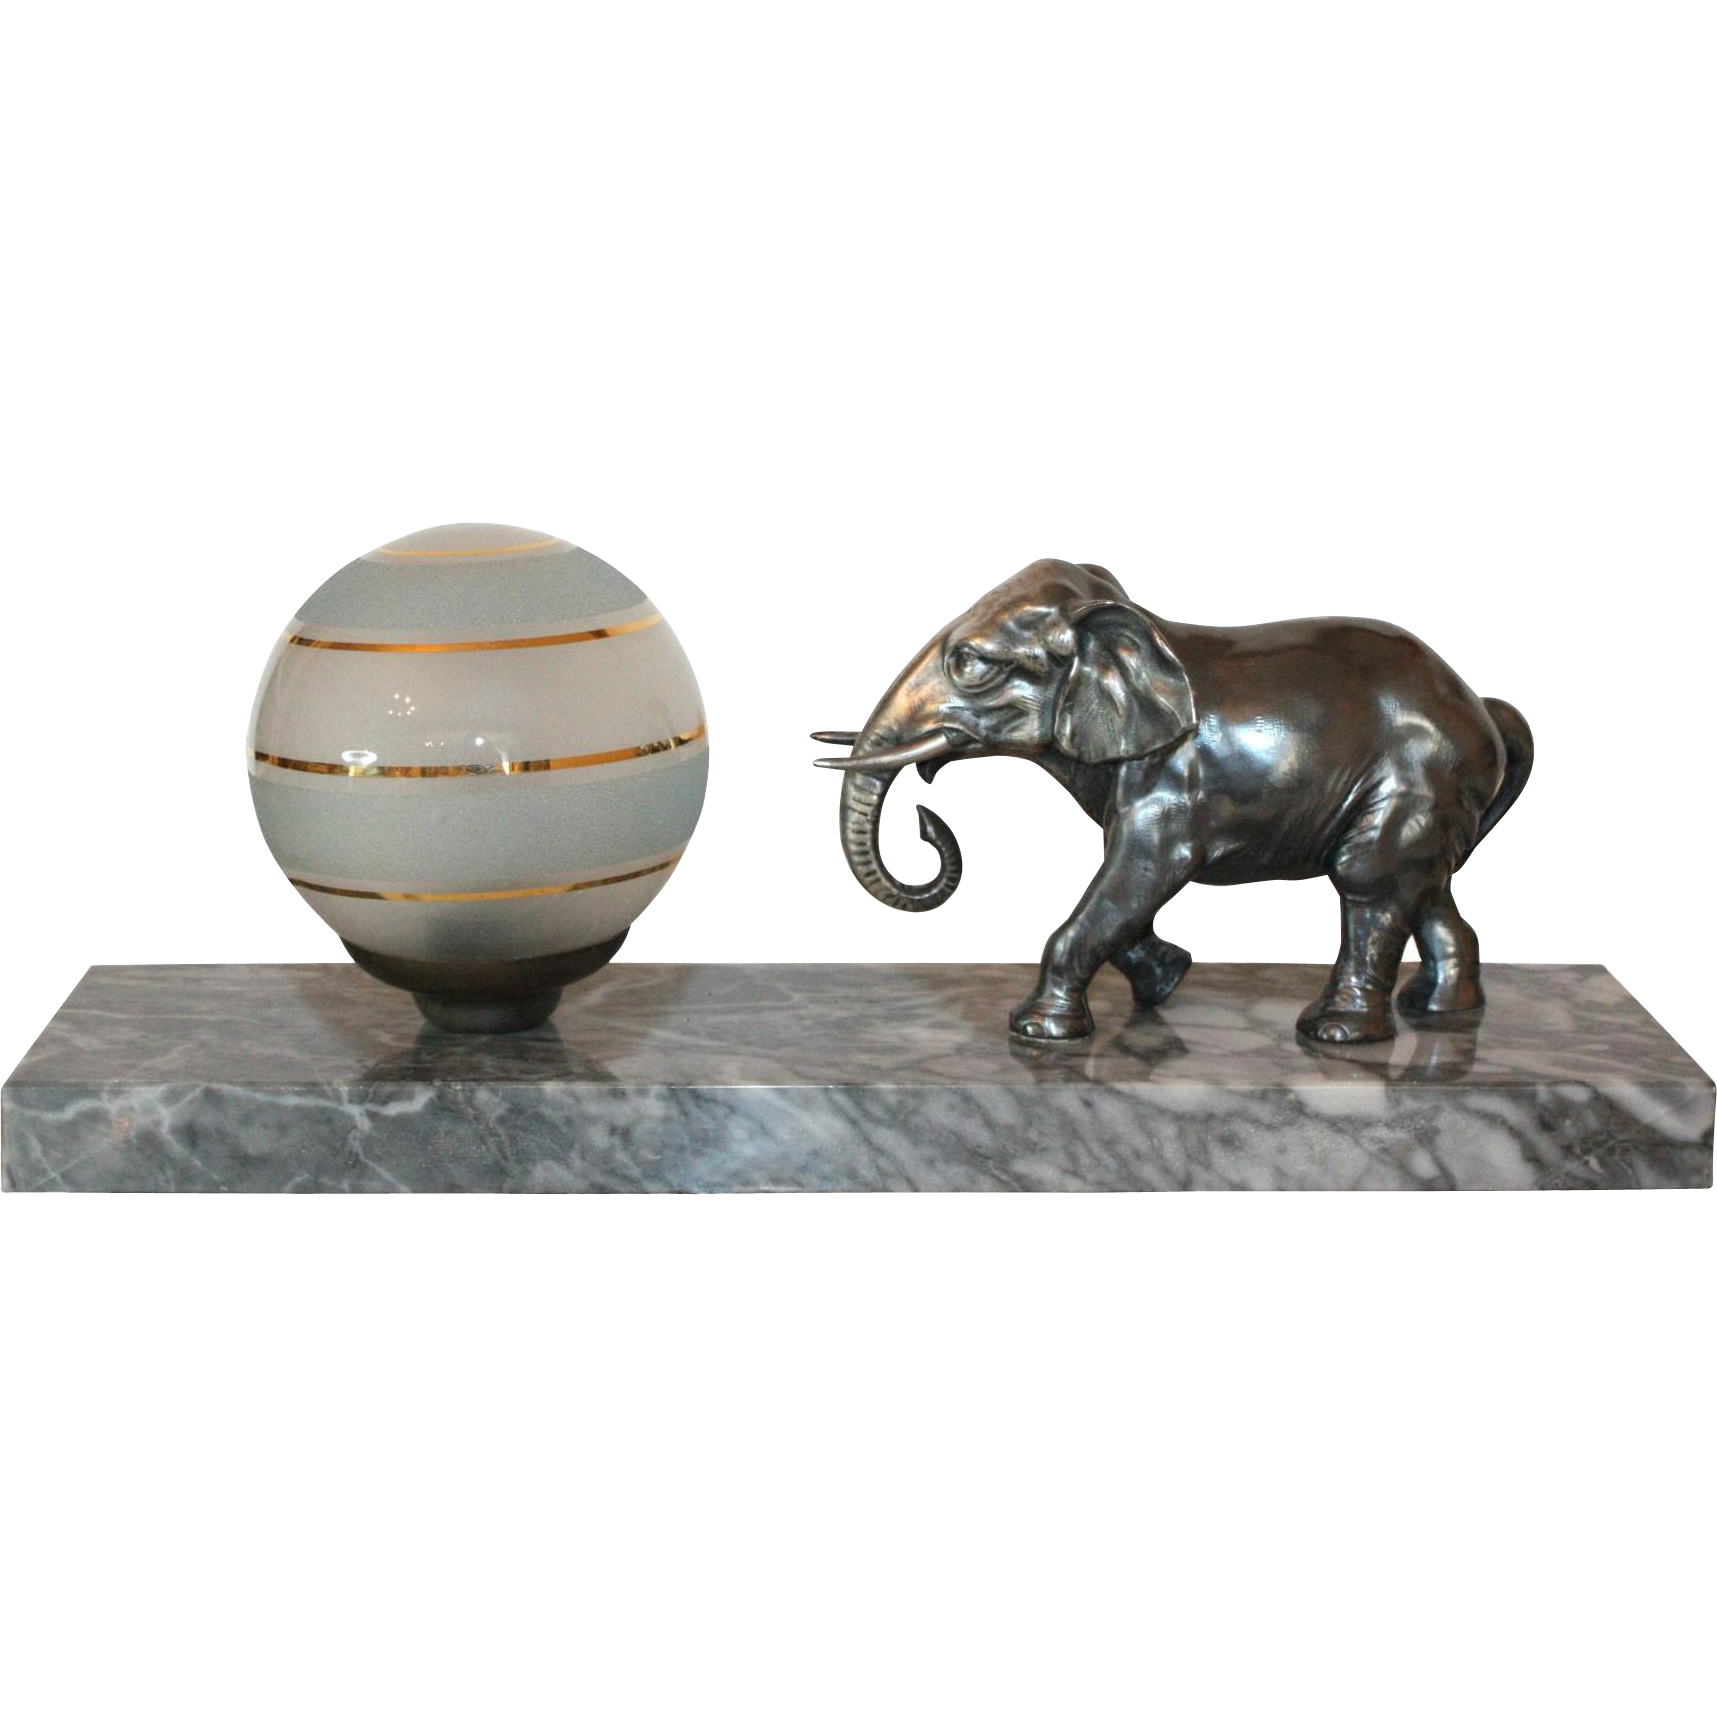 french art deco elephant table lamp from department18 on. Black Bedroom Furniture Sets. Home Design Ideas